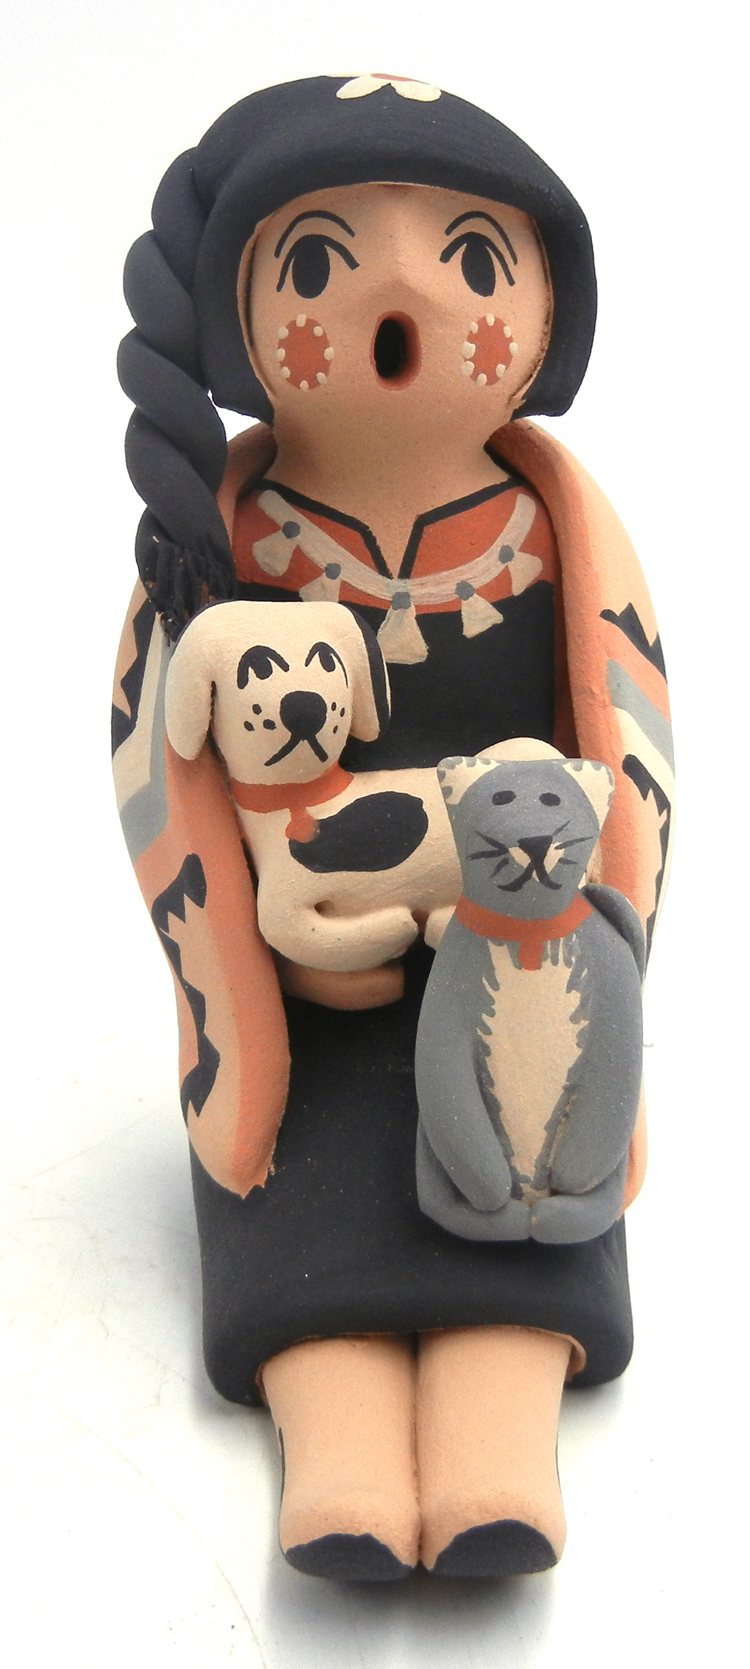 Jemez seated storyteller with dog and cat by Chrislyn Fragua